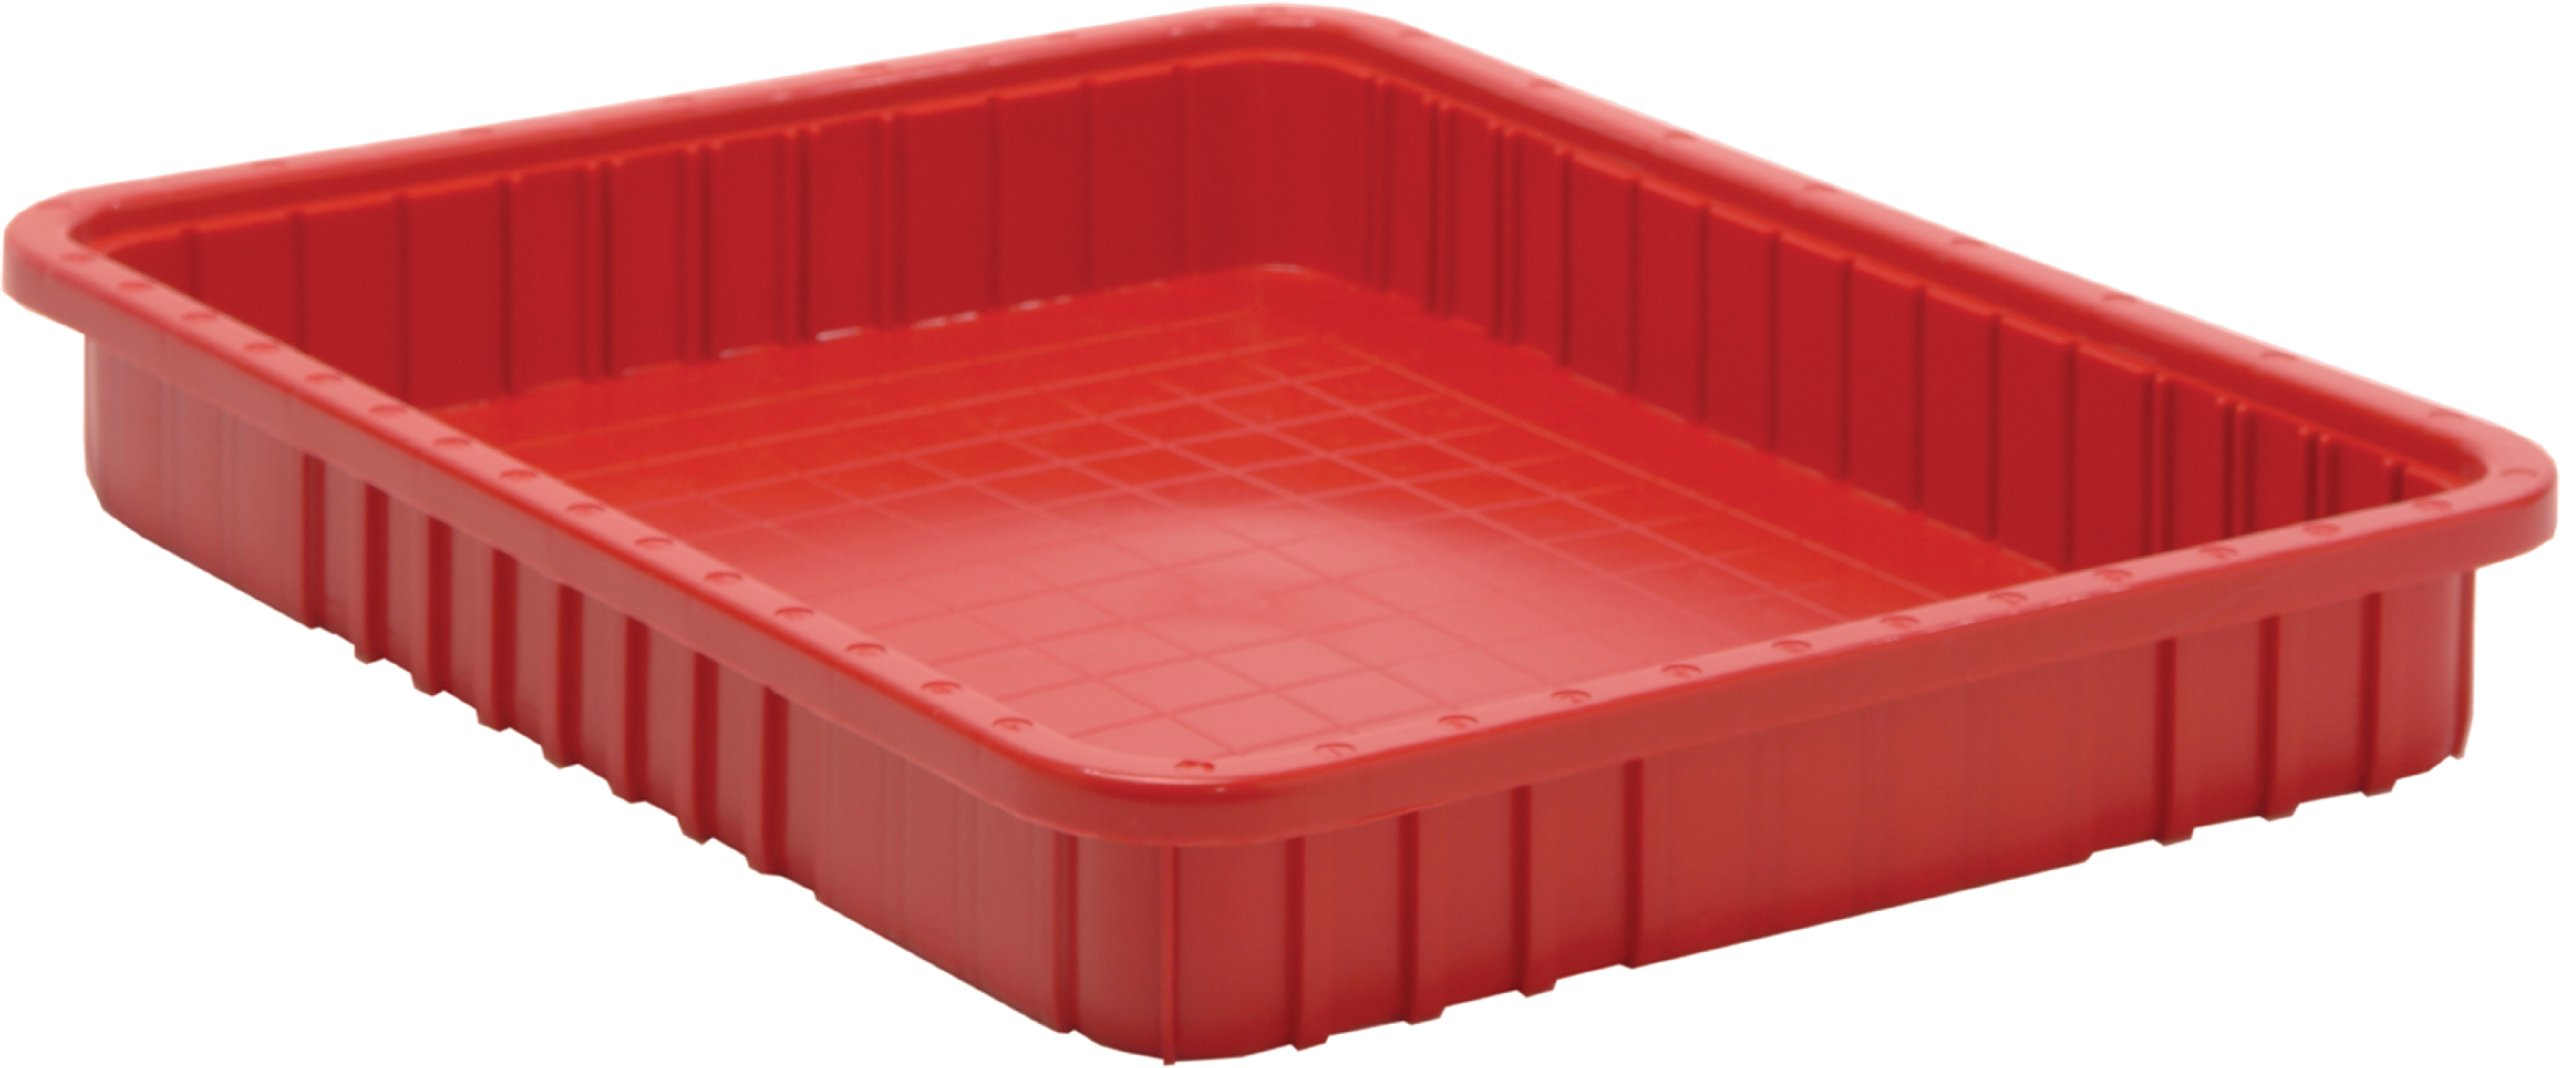 Quantum Storage Systems DG93030RD Dividable Grid Container 22-1/2-Inch Long by 17-1/2-Inch Wide by 3-Inch High, Red, 6-Pack